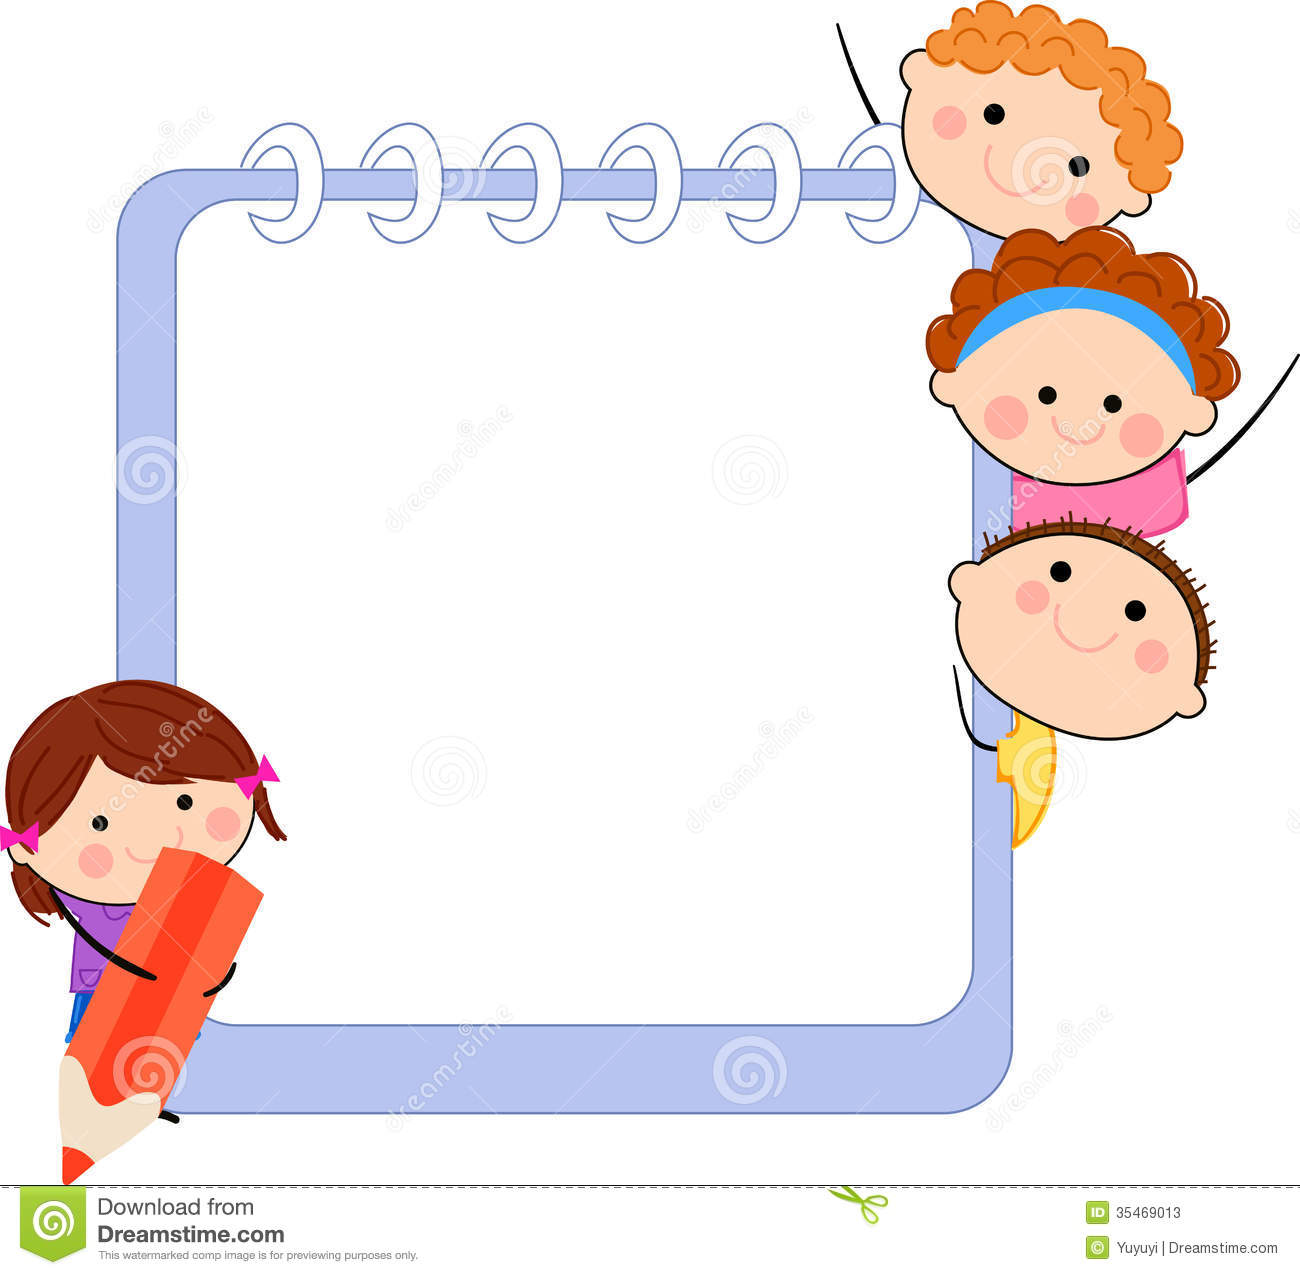 Cute cartoon kids frame stock vector. Illustration of group - 35469013